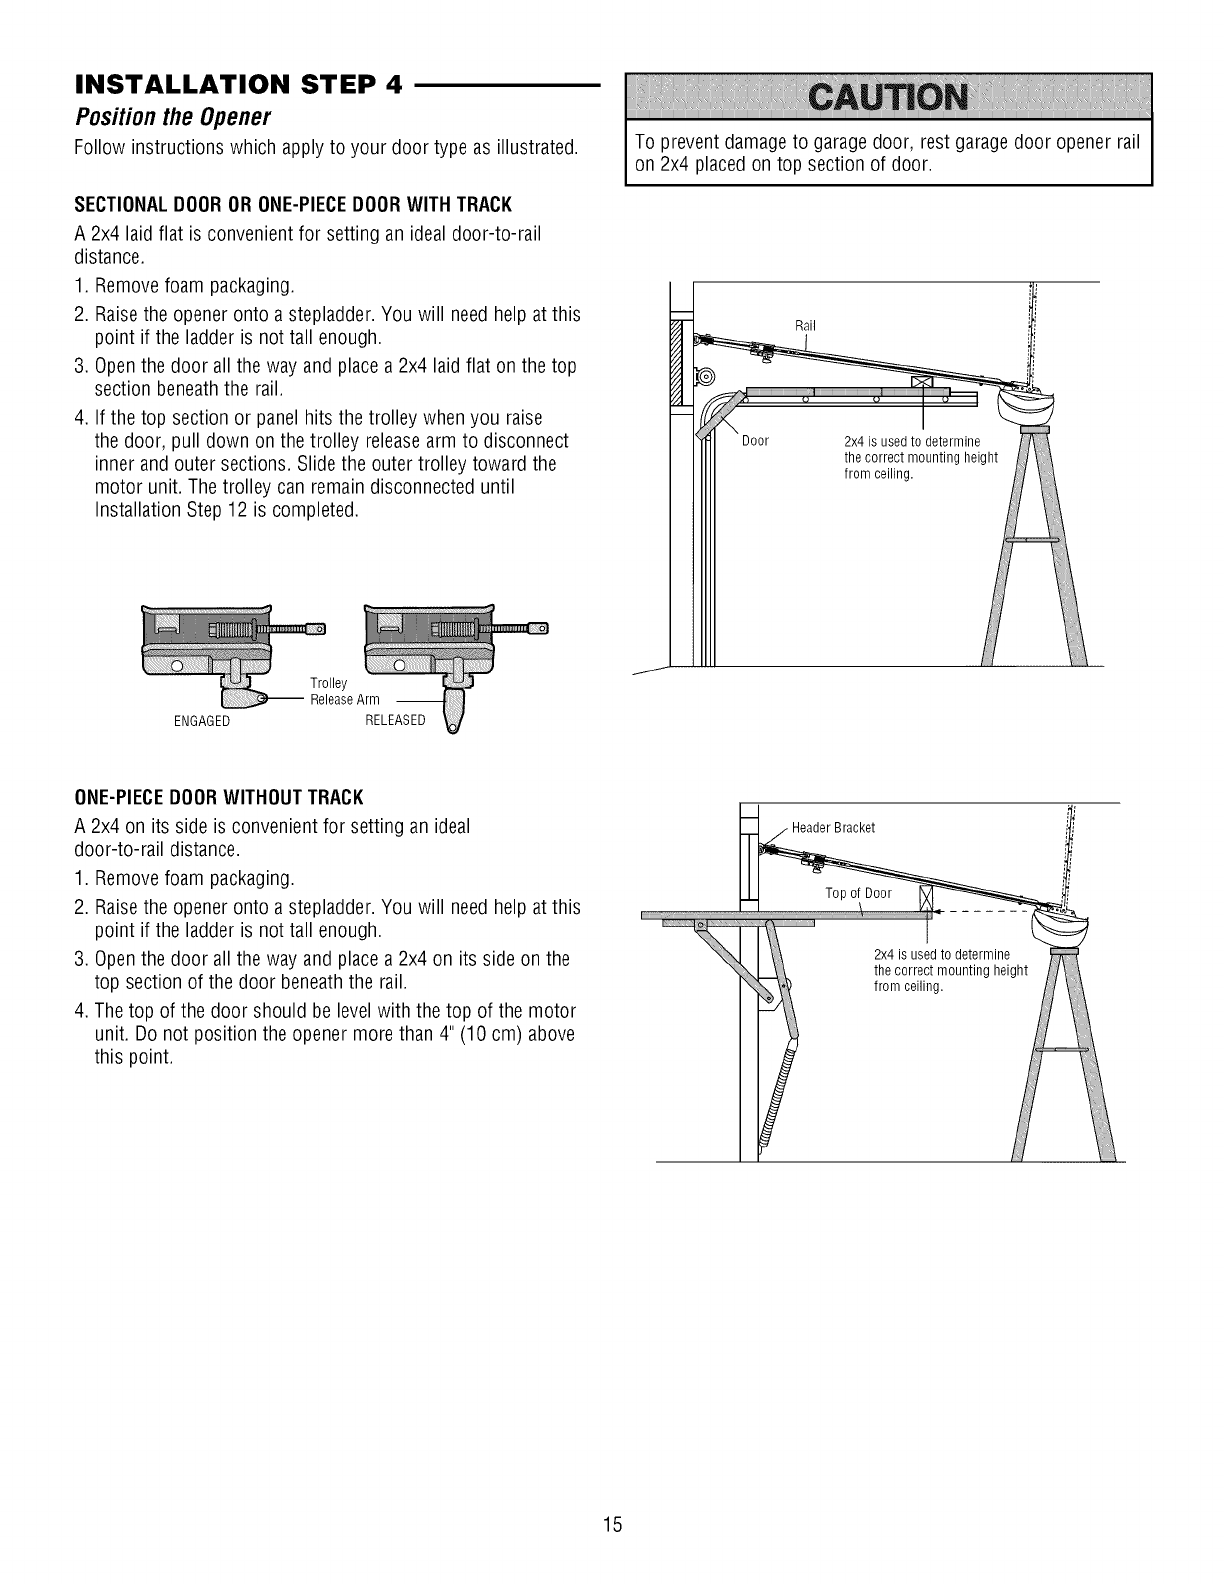 Page 15 of craftsman garage door opener 1393043 user guide installation step 4 positionthe opener ccuart Choice Image